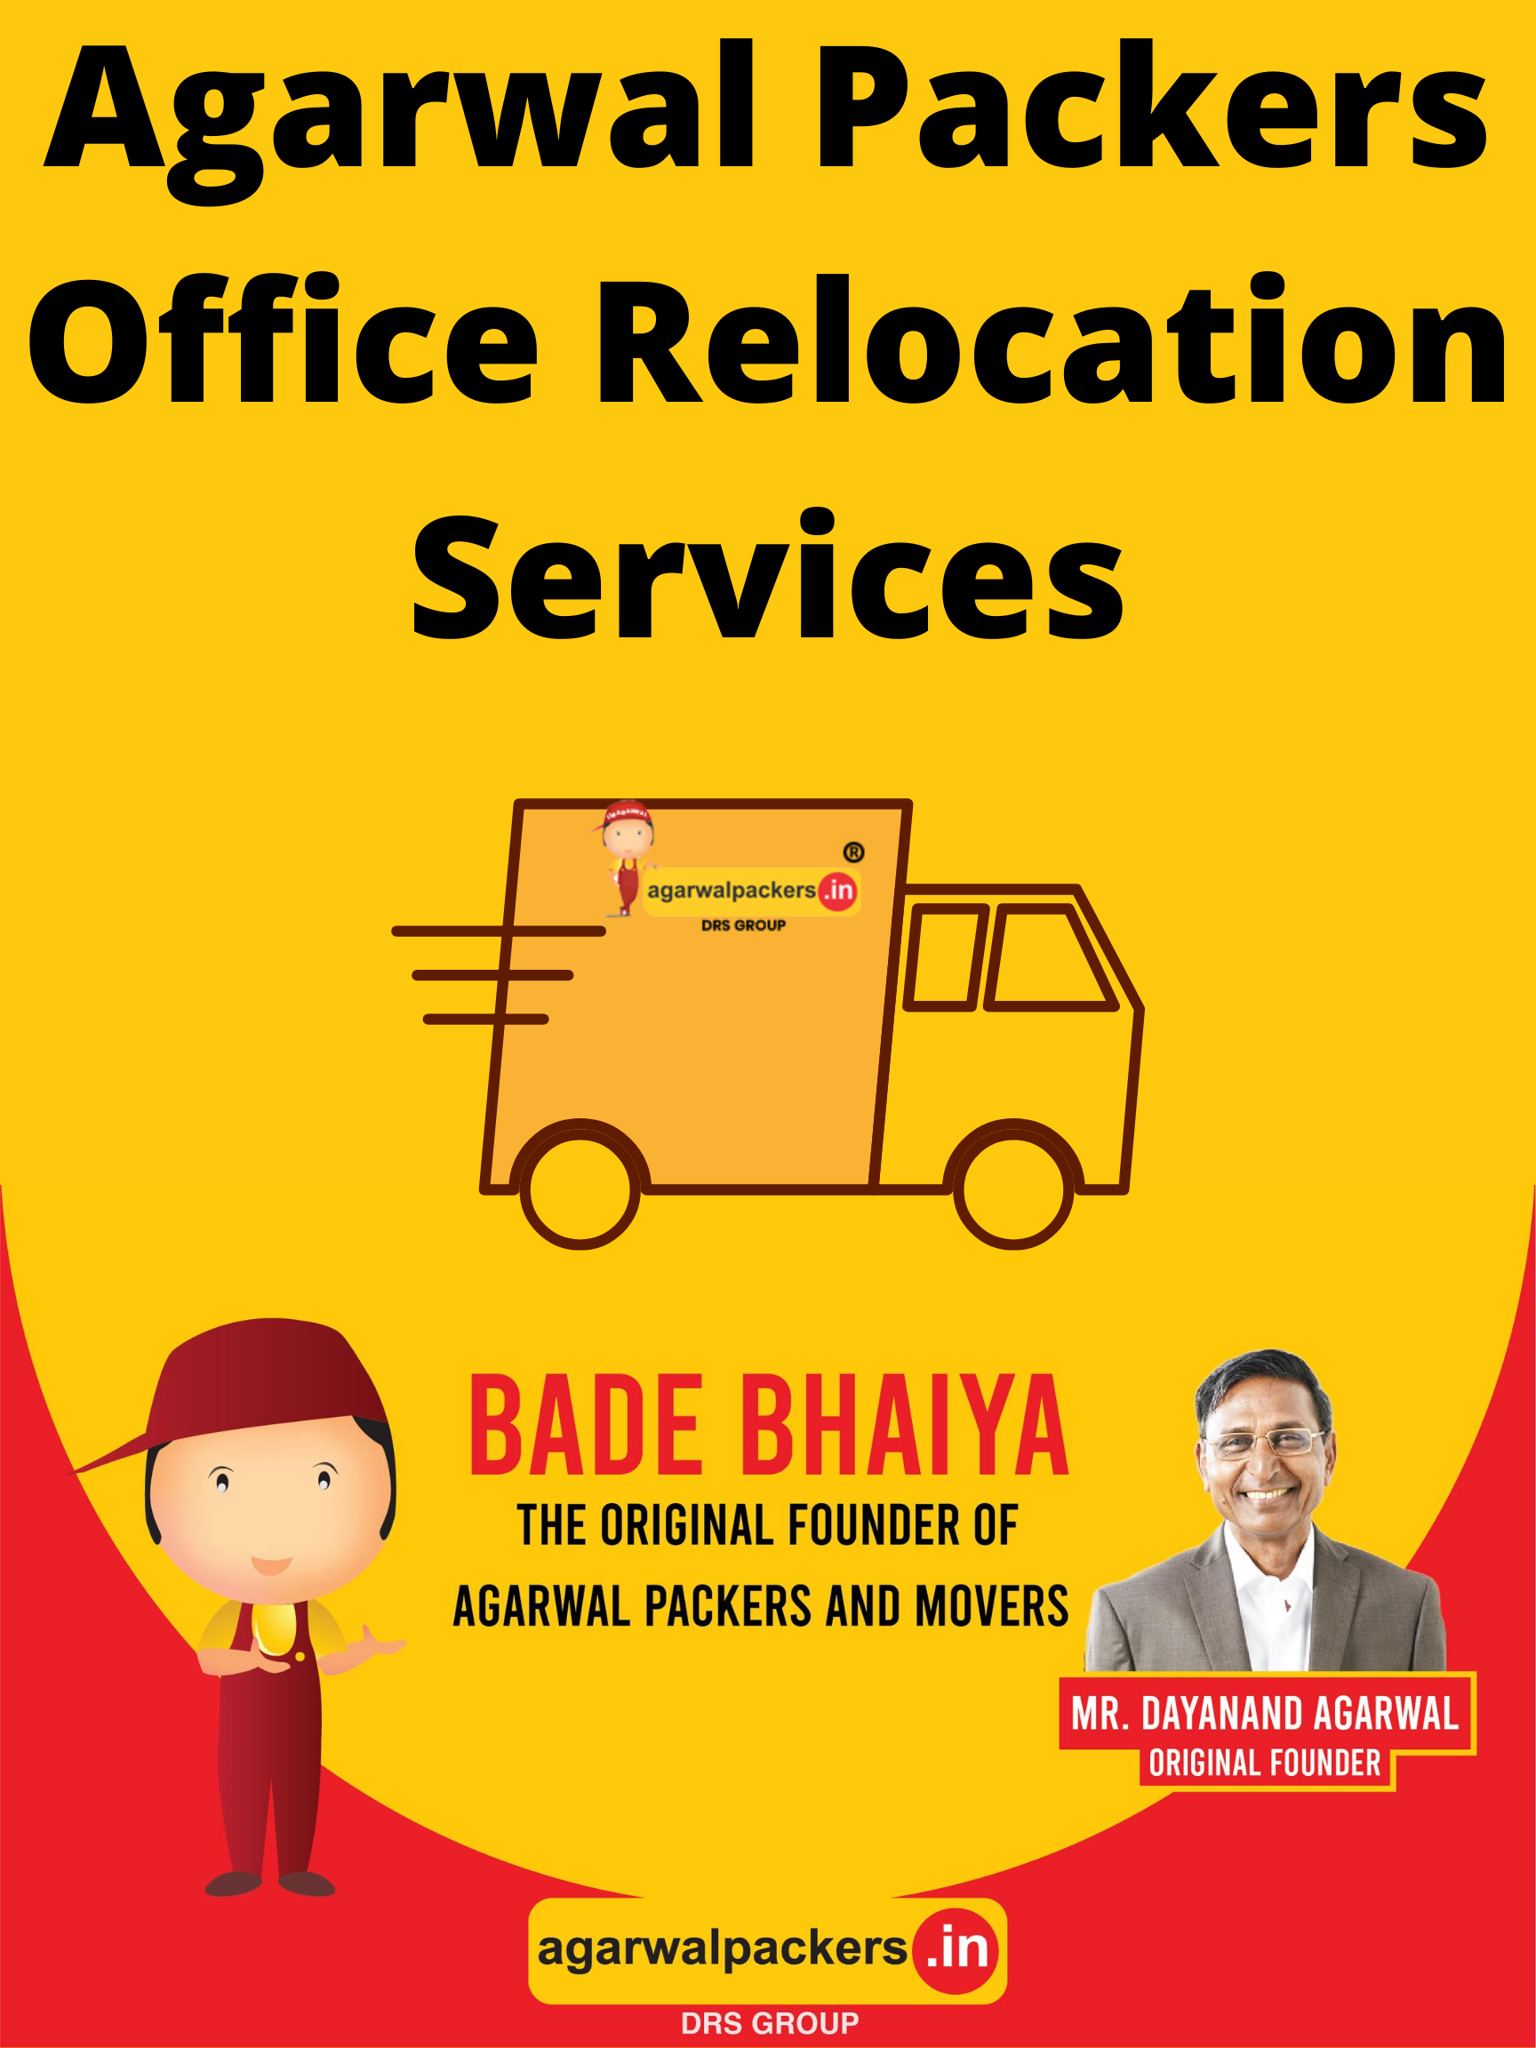 Agarwal Packers Office Relocation Services